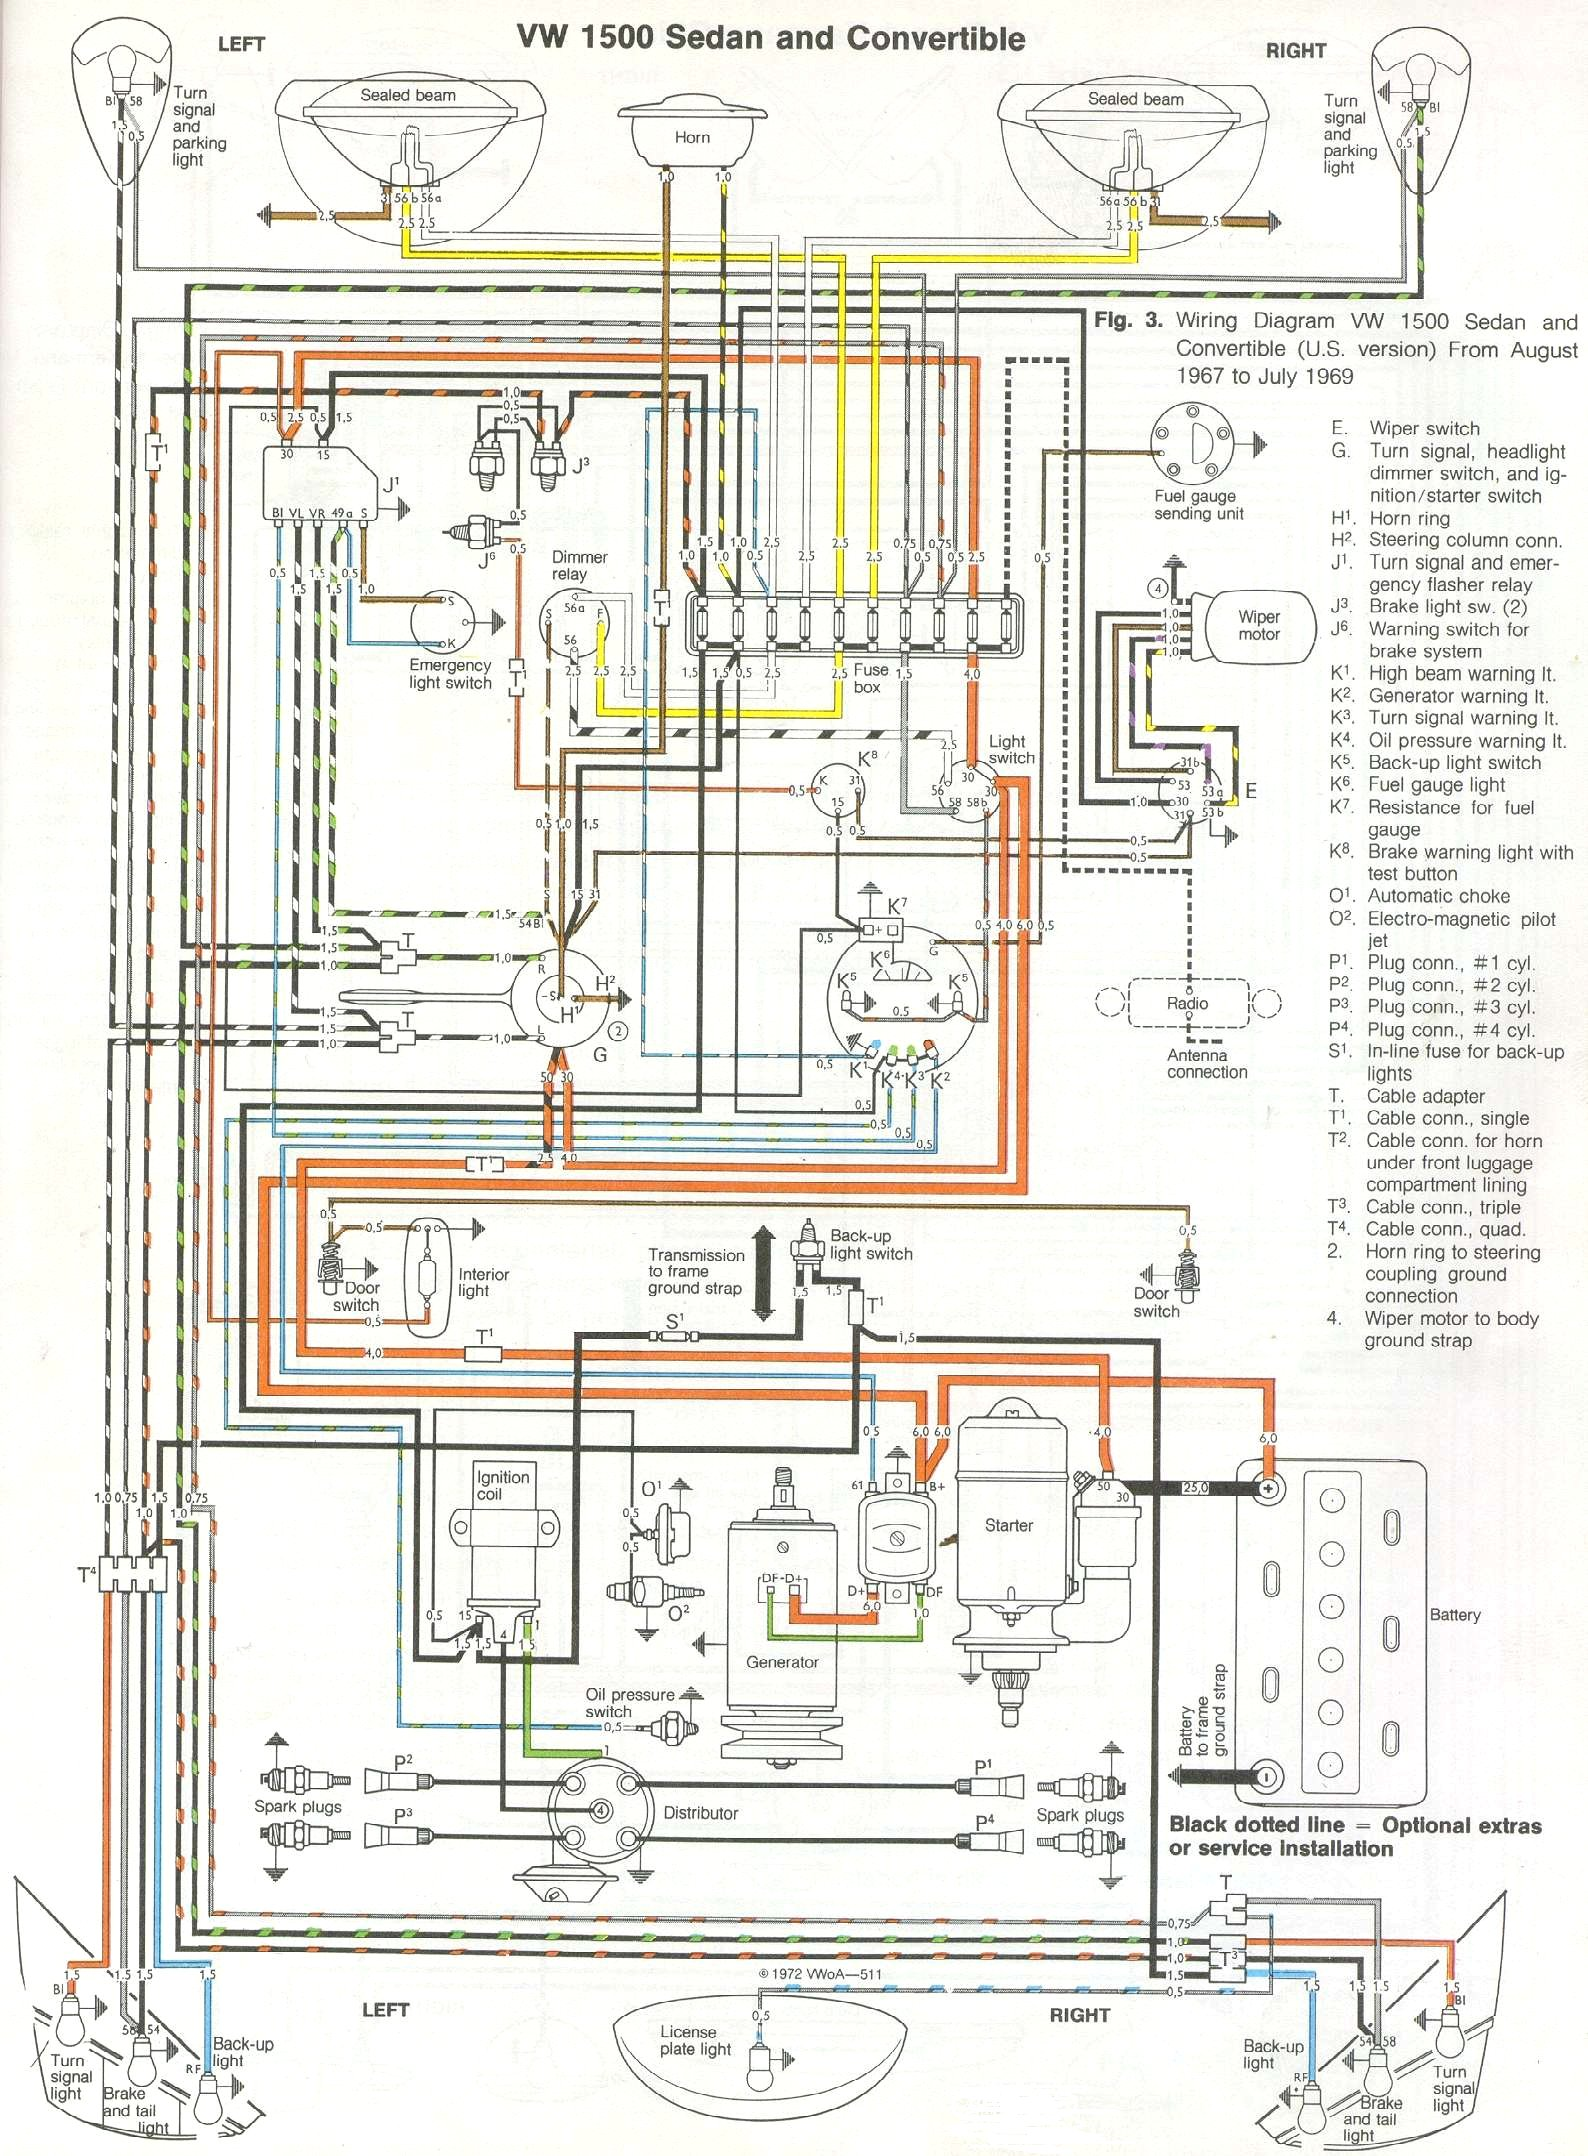 F Cf B C furthermore Camaro Charging Circuit also Instrument Cluster Wiring Diagrams Of Ford Mustang Rd Generation as well Altsys furthermore Pits Z. on 1970 chevy alternator wiring diagram